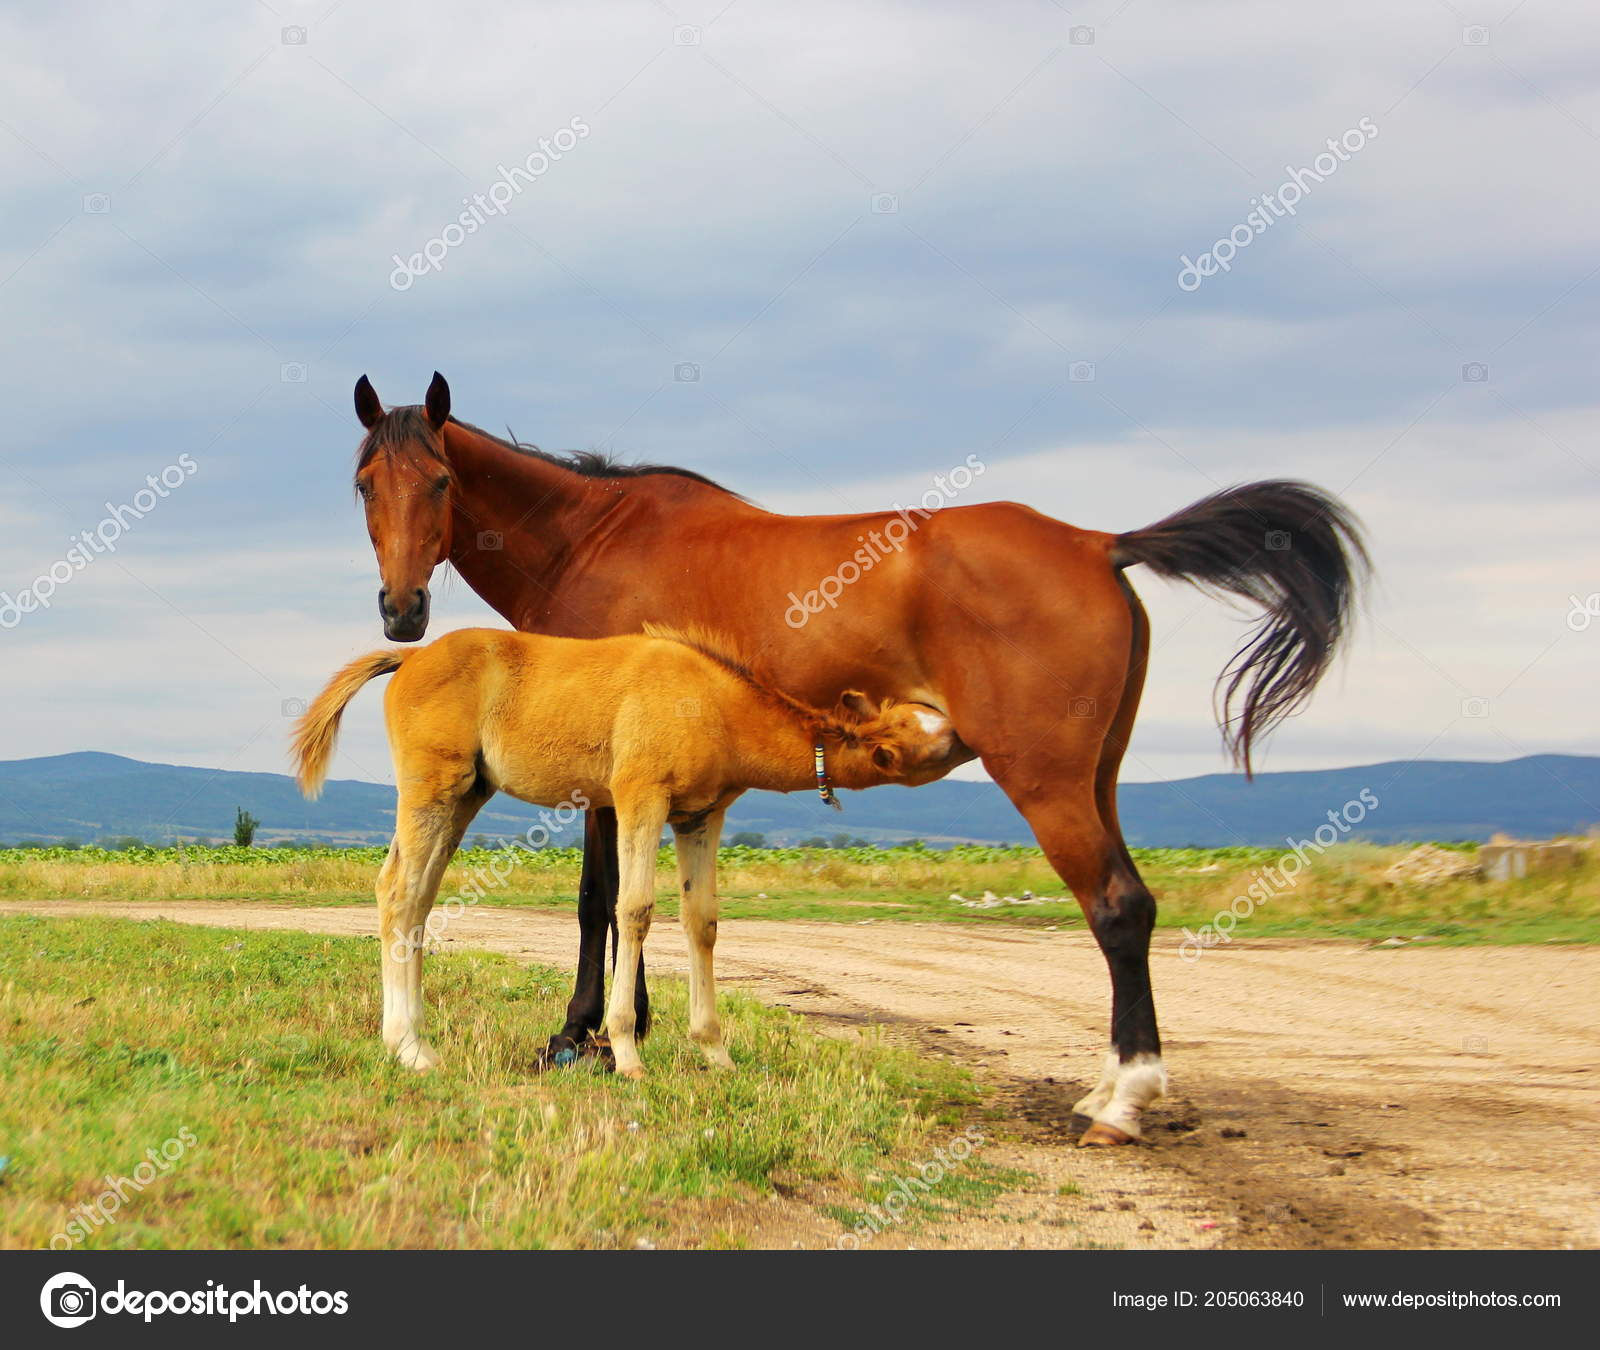 Horse Mother Brown Color Small Cub Foal Field Mother Feeds Stock Photo C Consuelo2002 205063840